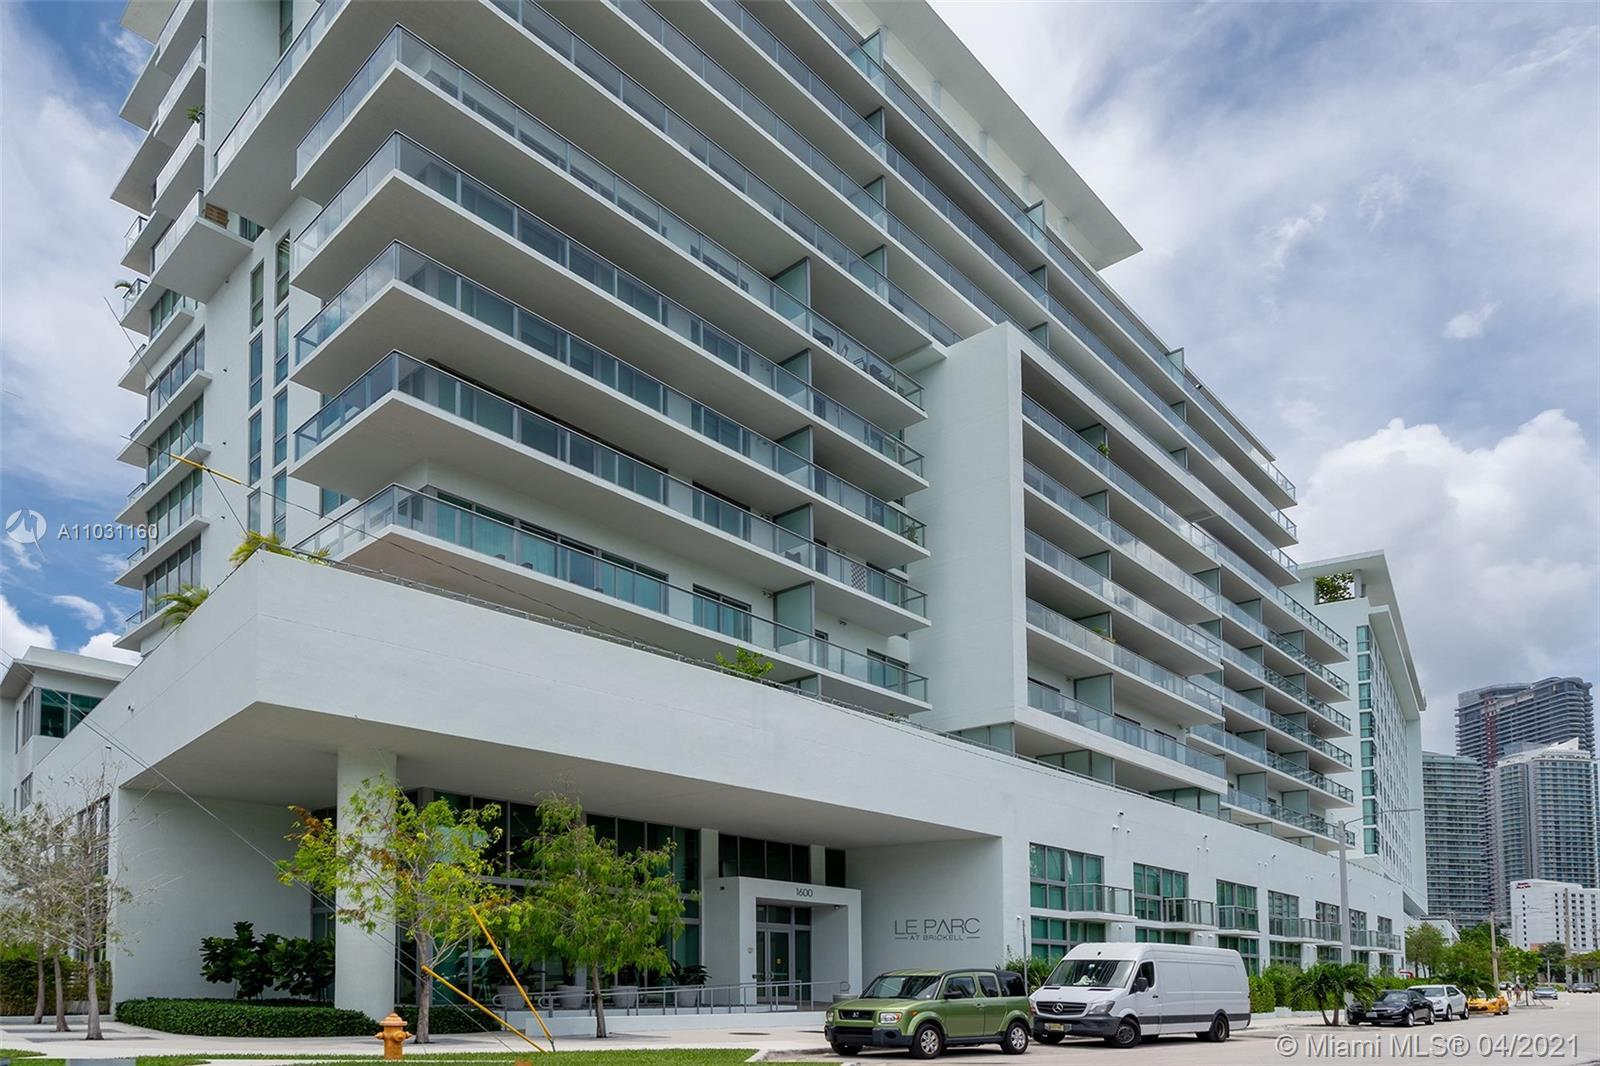 BRIGTH AND SPACIOUS STUDIO AT LE PARC AT BRICKELL Condo. Conveniently located in a quite and residen